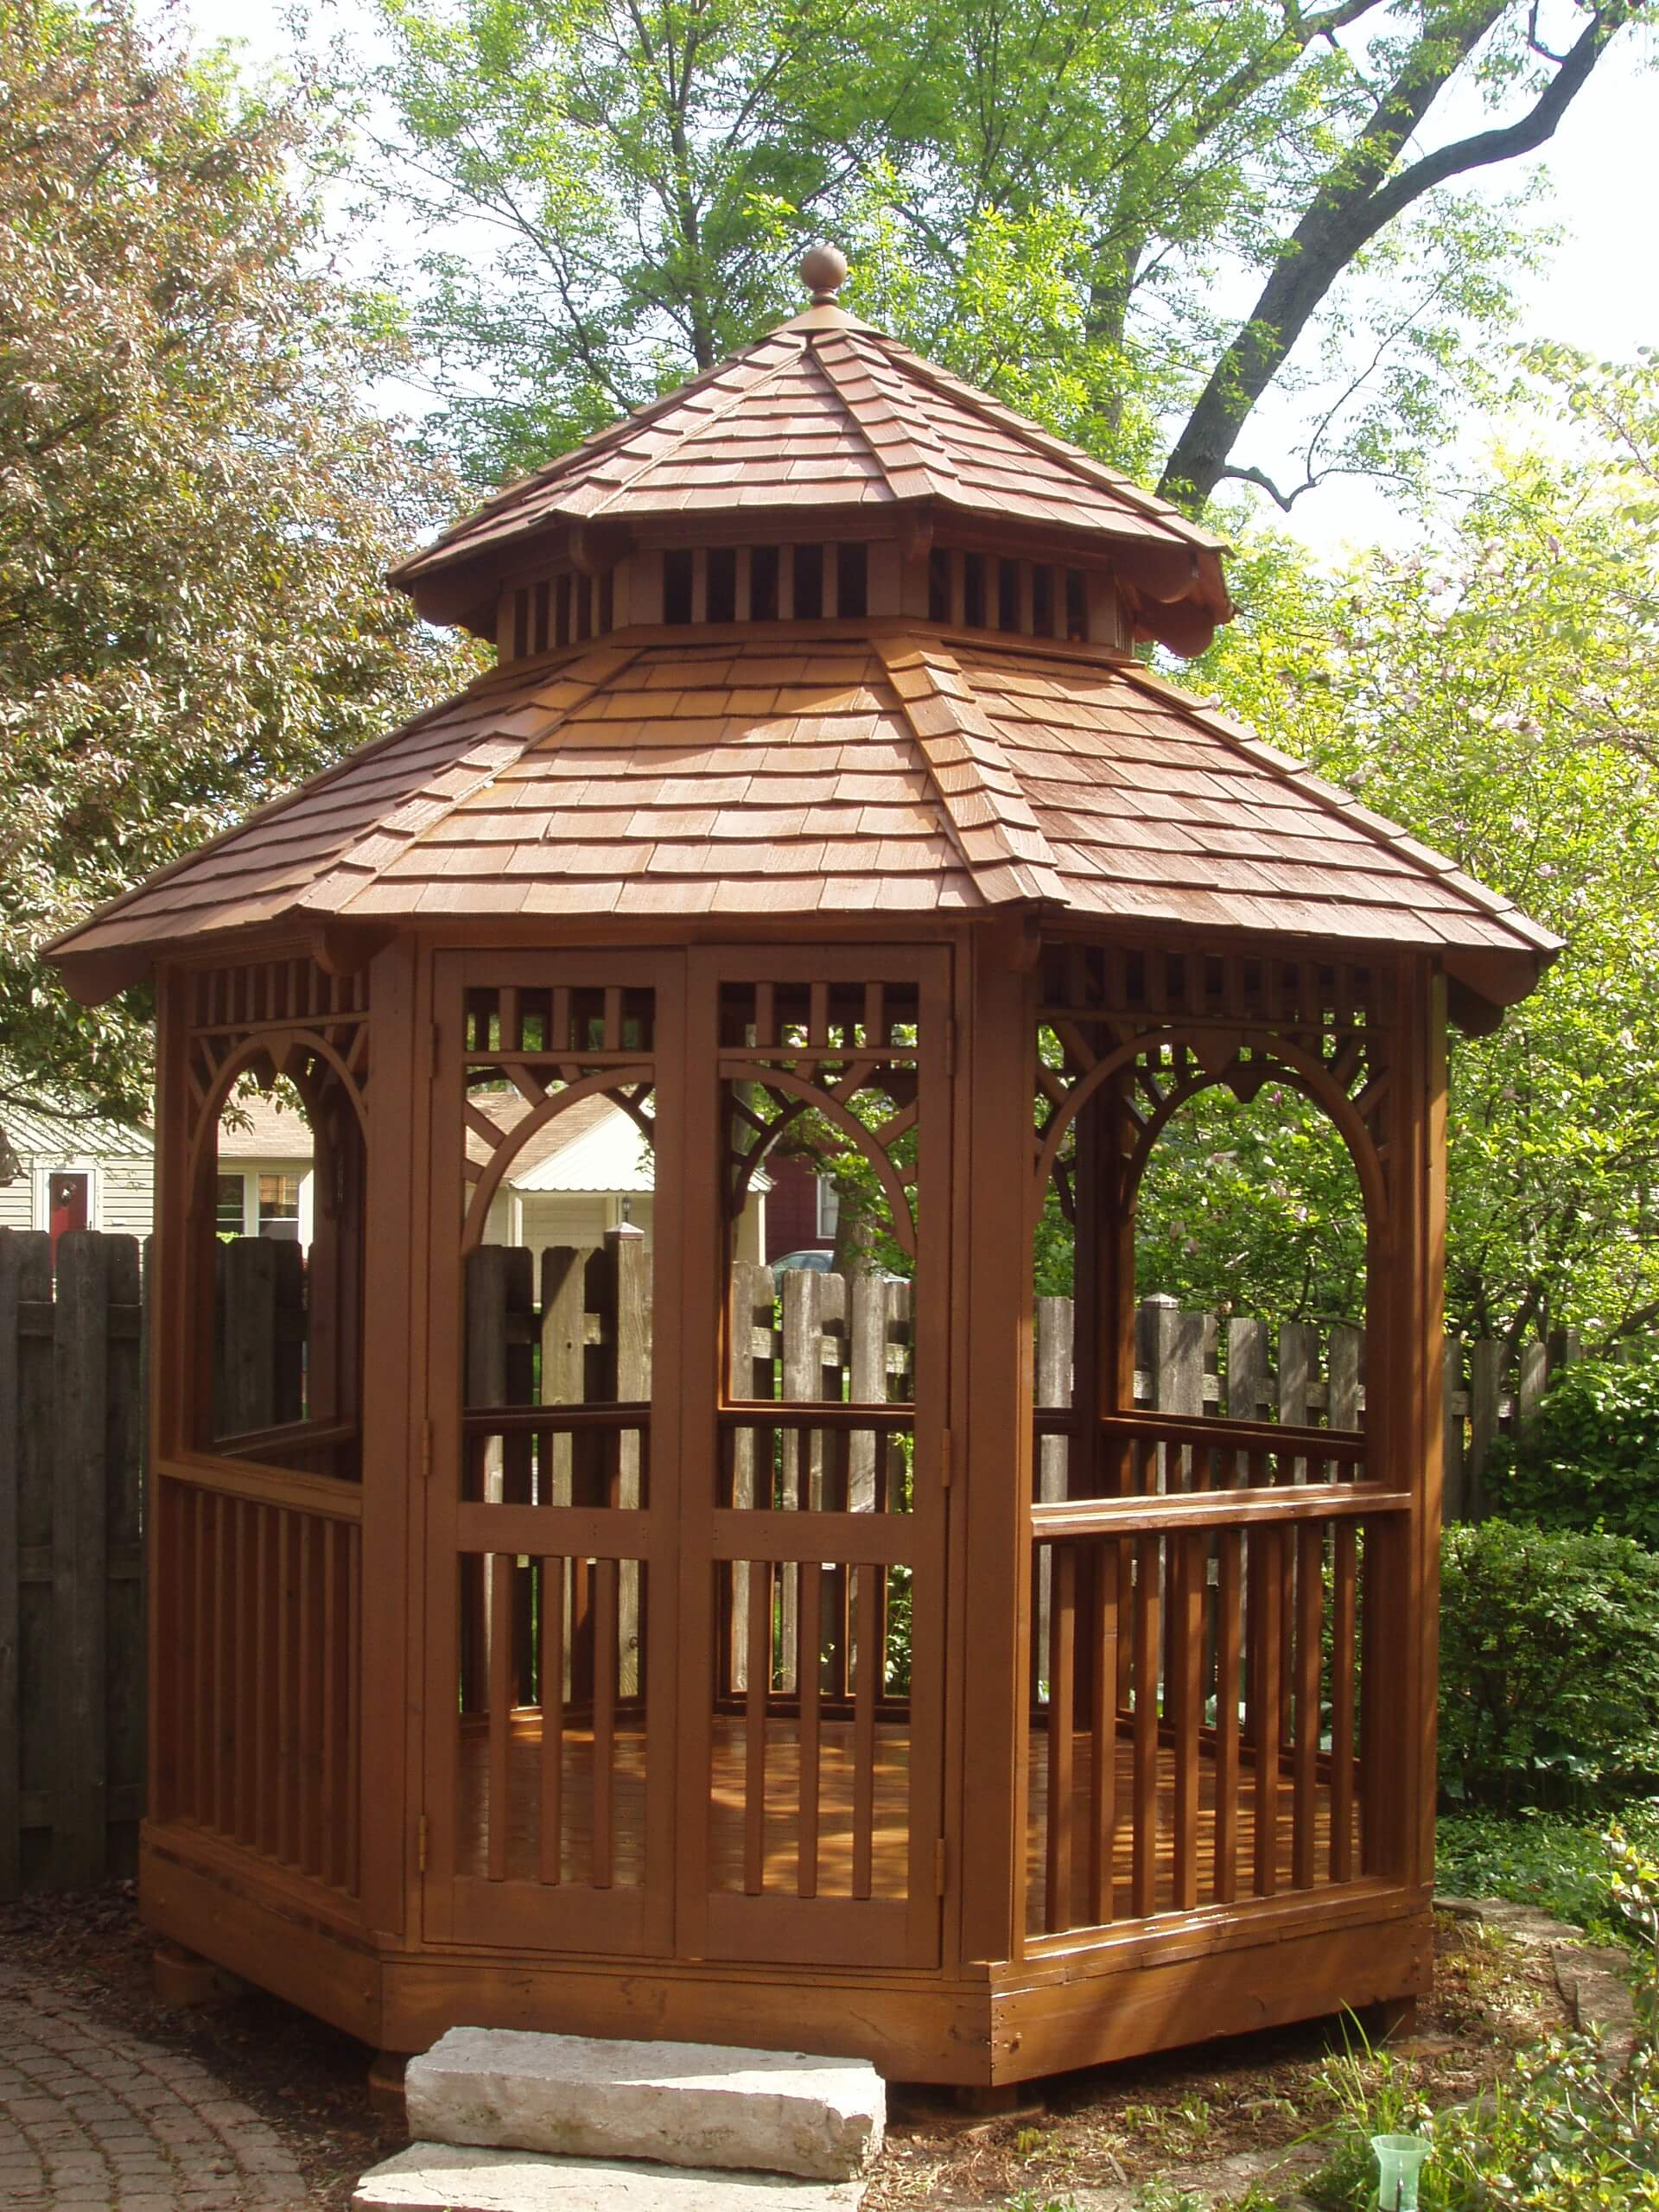 Outdoor gazebo recently stained with a semi transparent cedar bark stain and trees in the background.